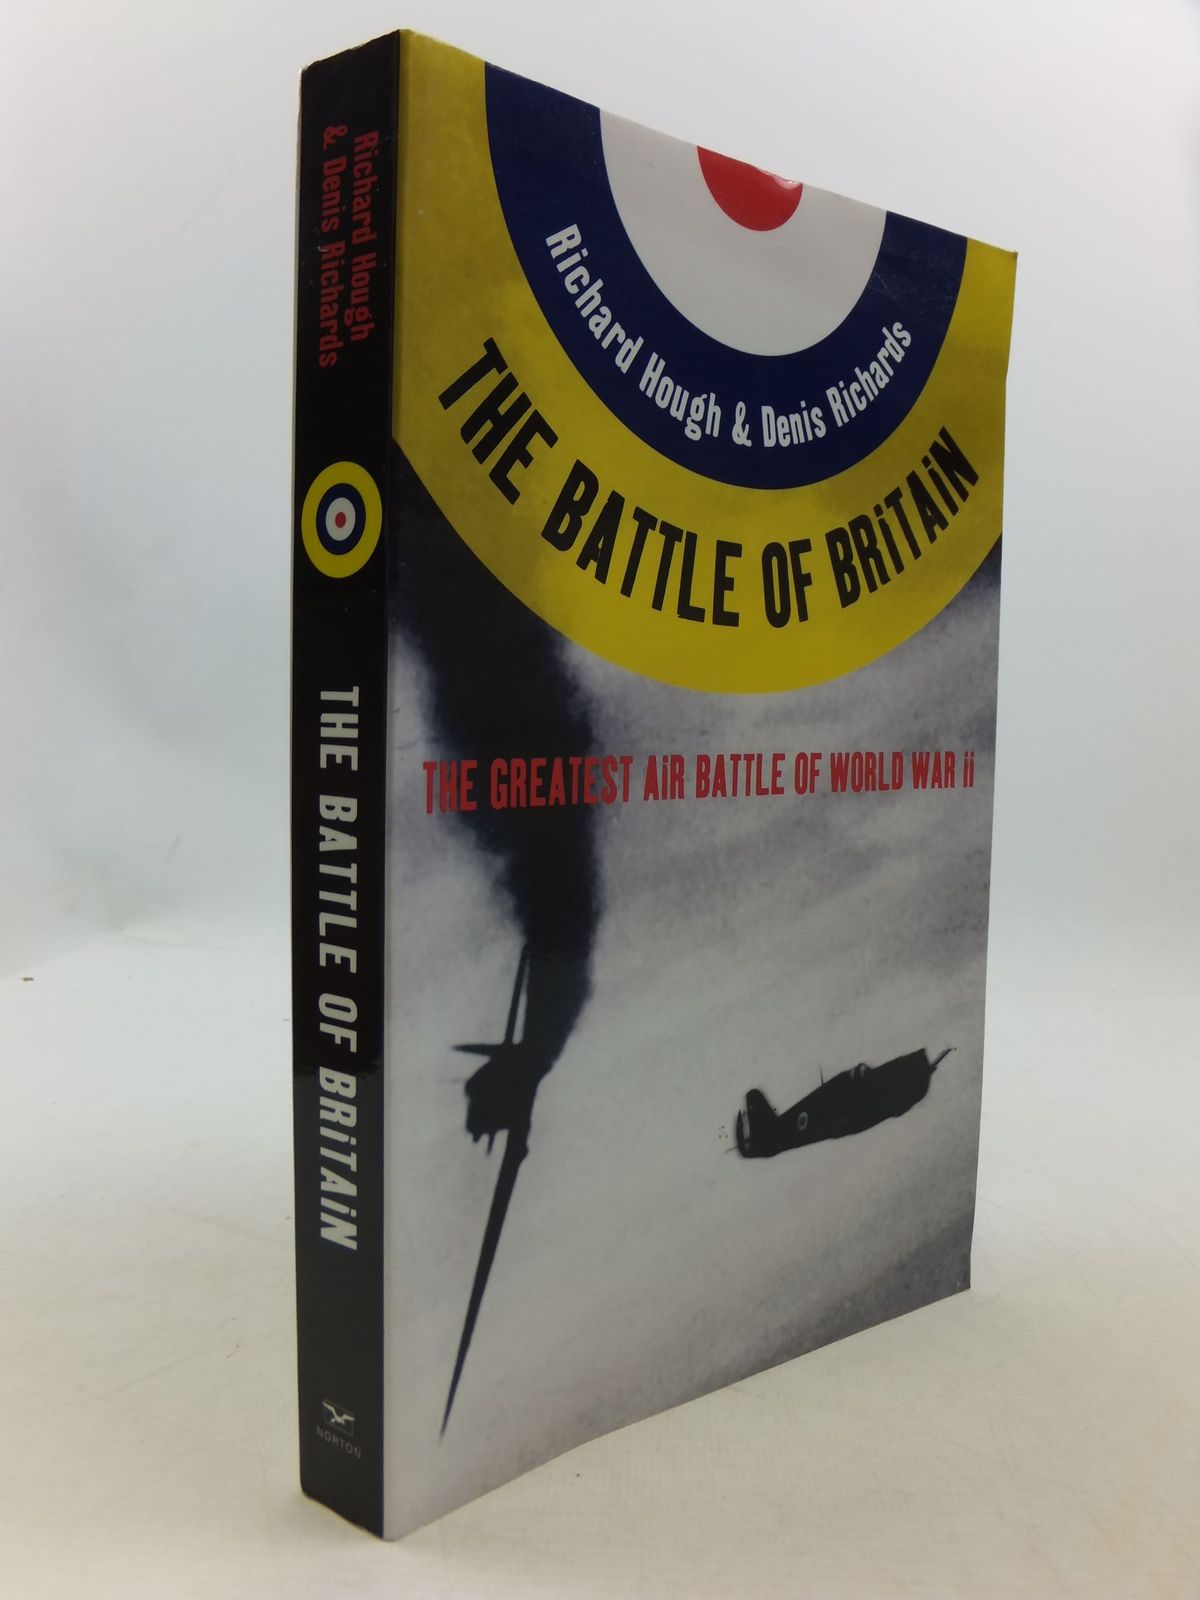 Photo of THE BATTLE OF BRITAIN THE GREATEST AIR BATTLE OF WORLD WAR II- Stock Number: 1708494